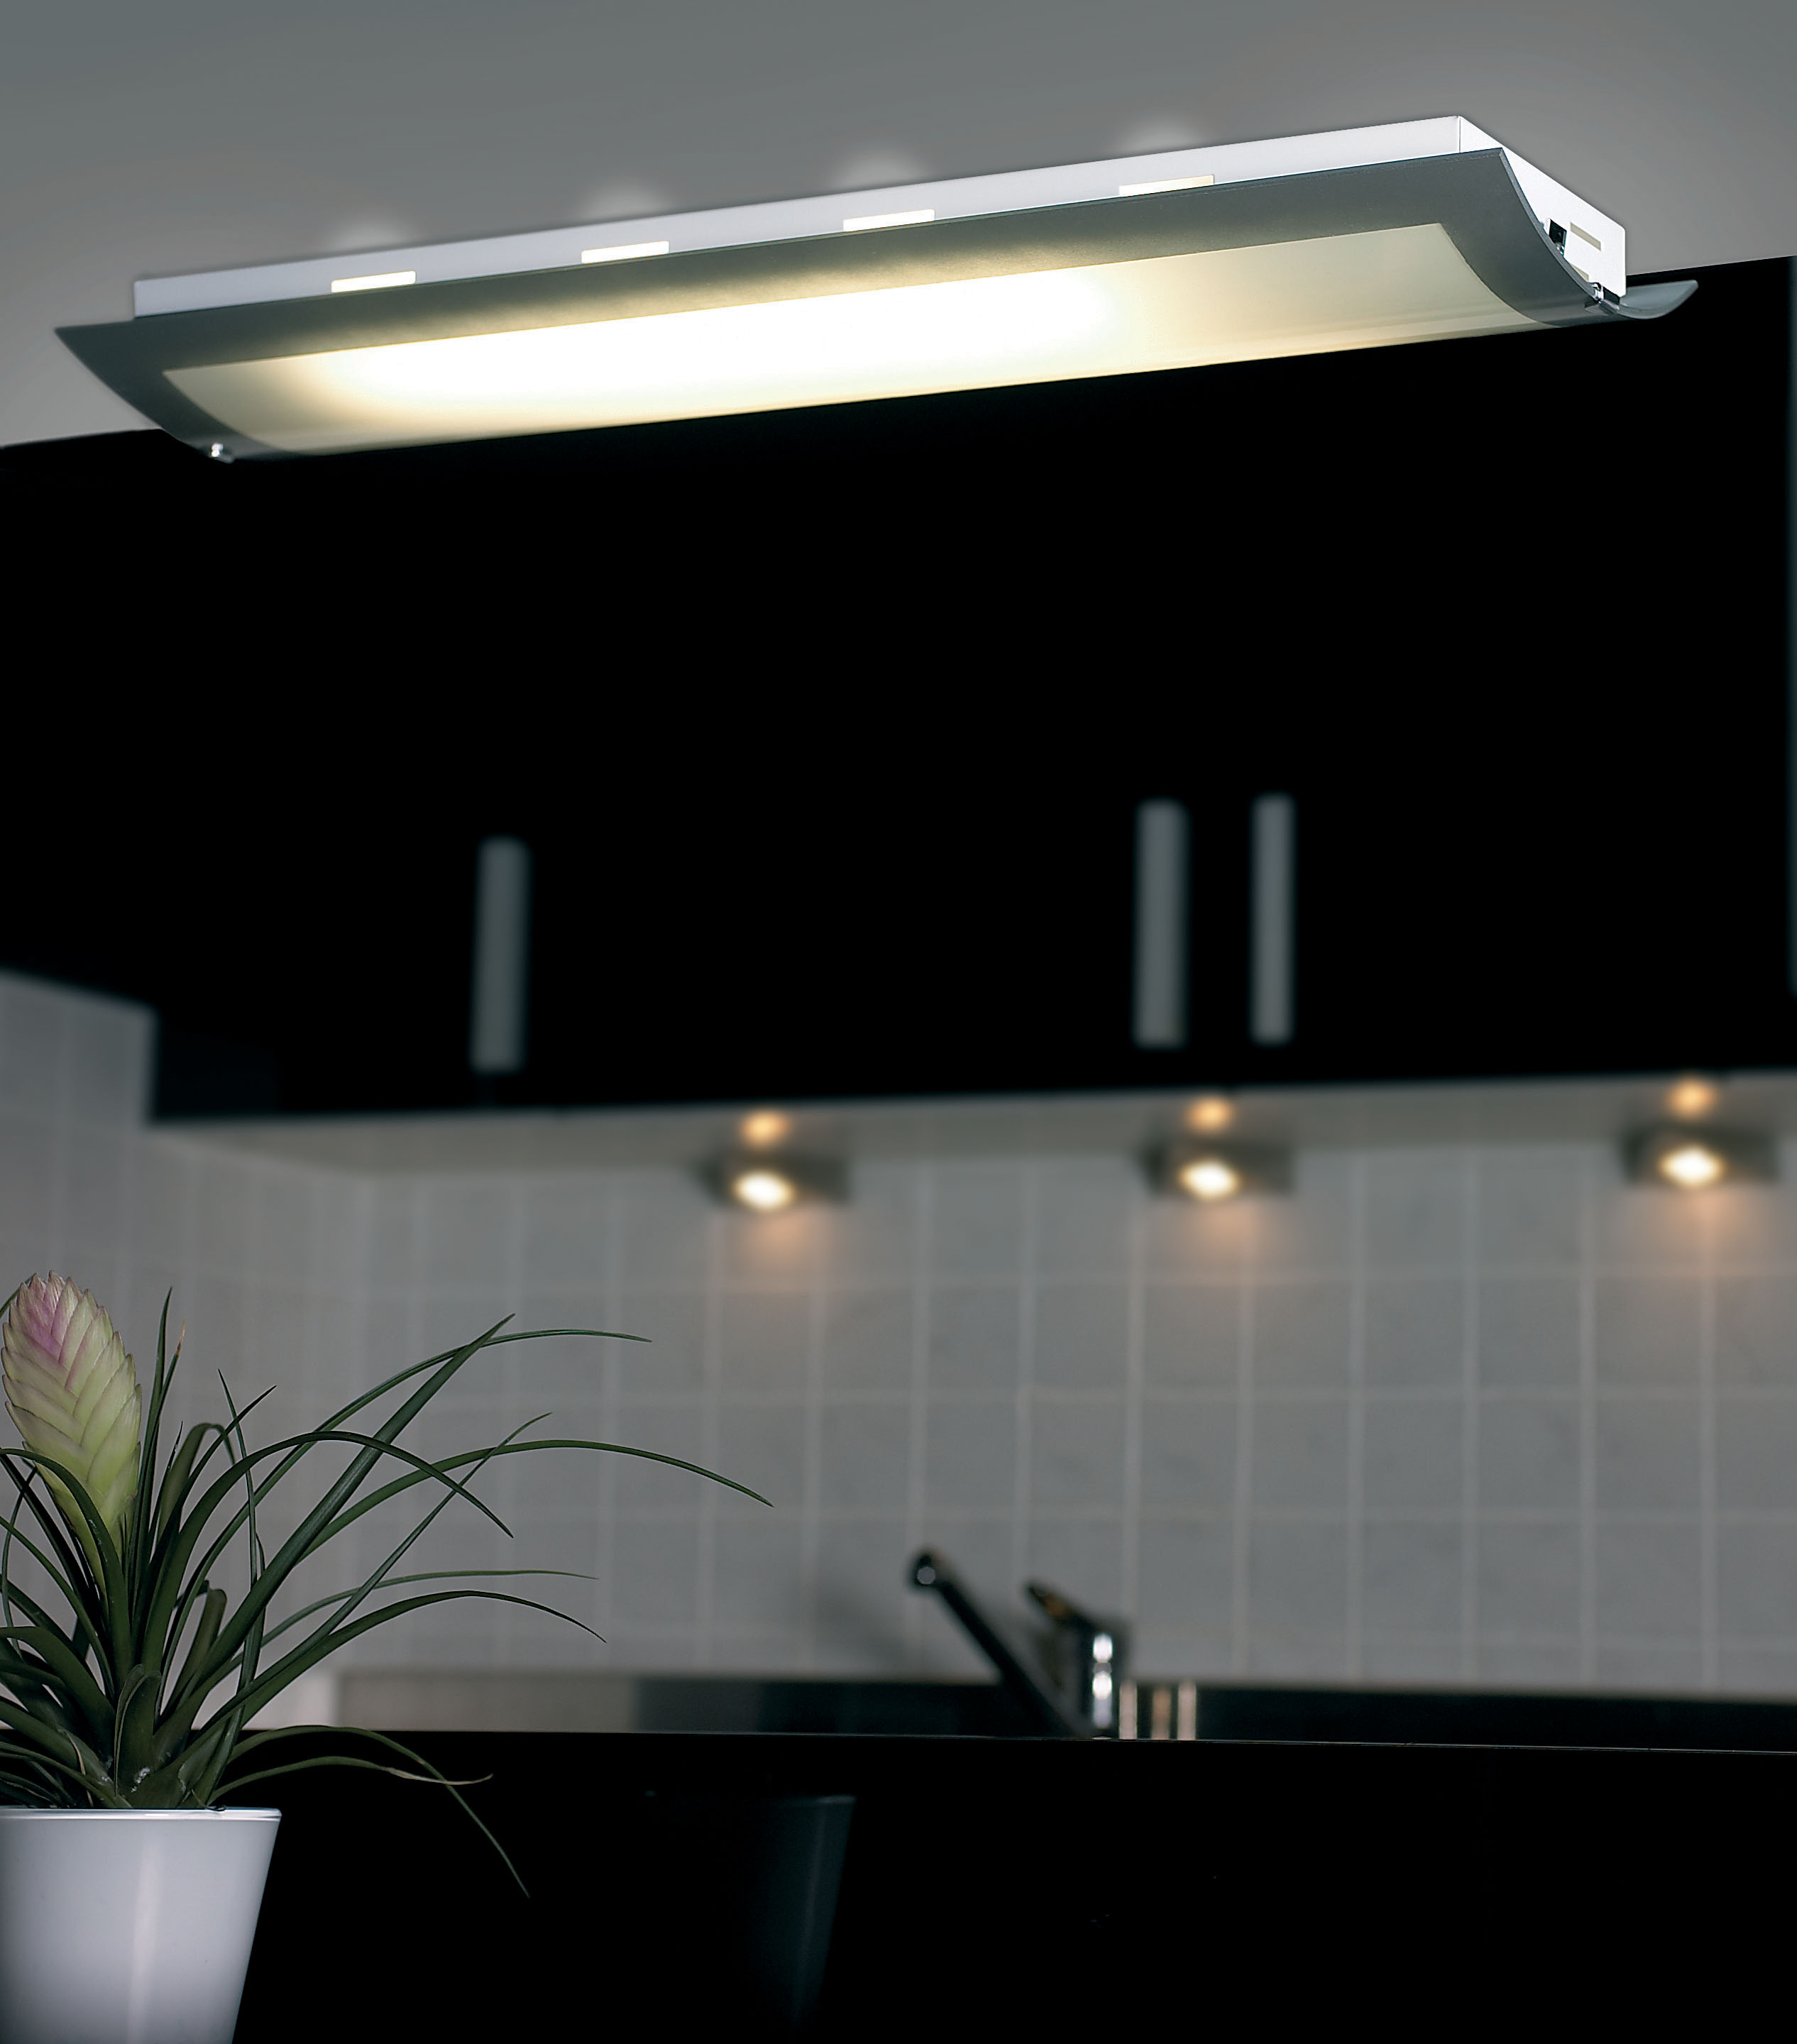 Lighting For Kitchen Ceiling Kitchen Lighting Fixtures Ceiling Led Kitchen Ceiling Lighting